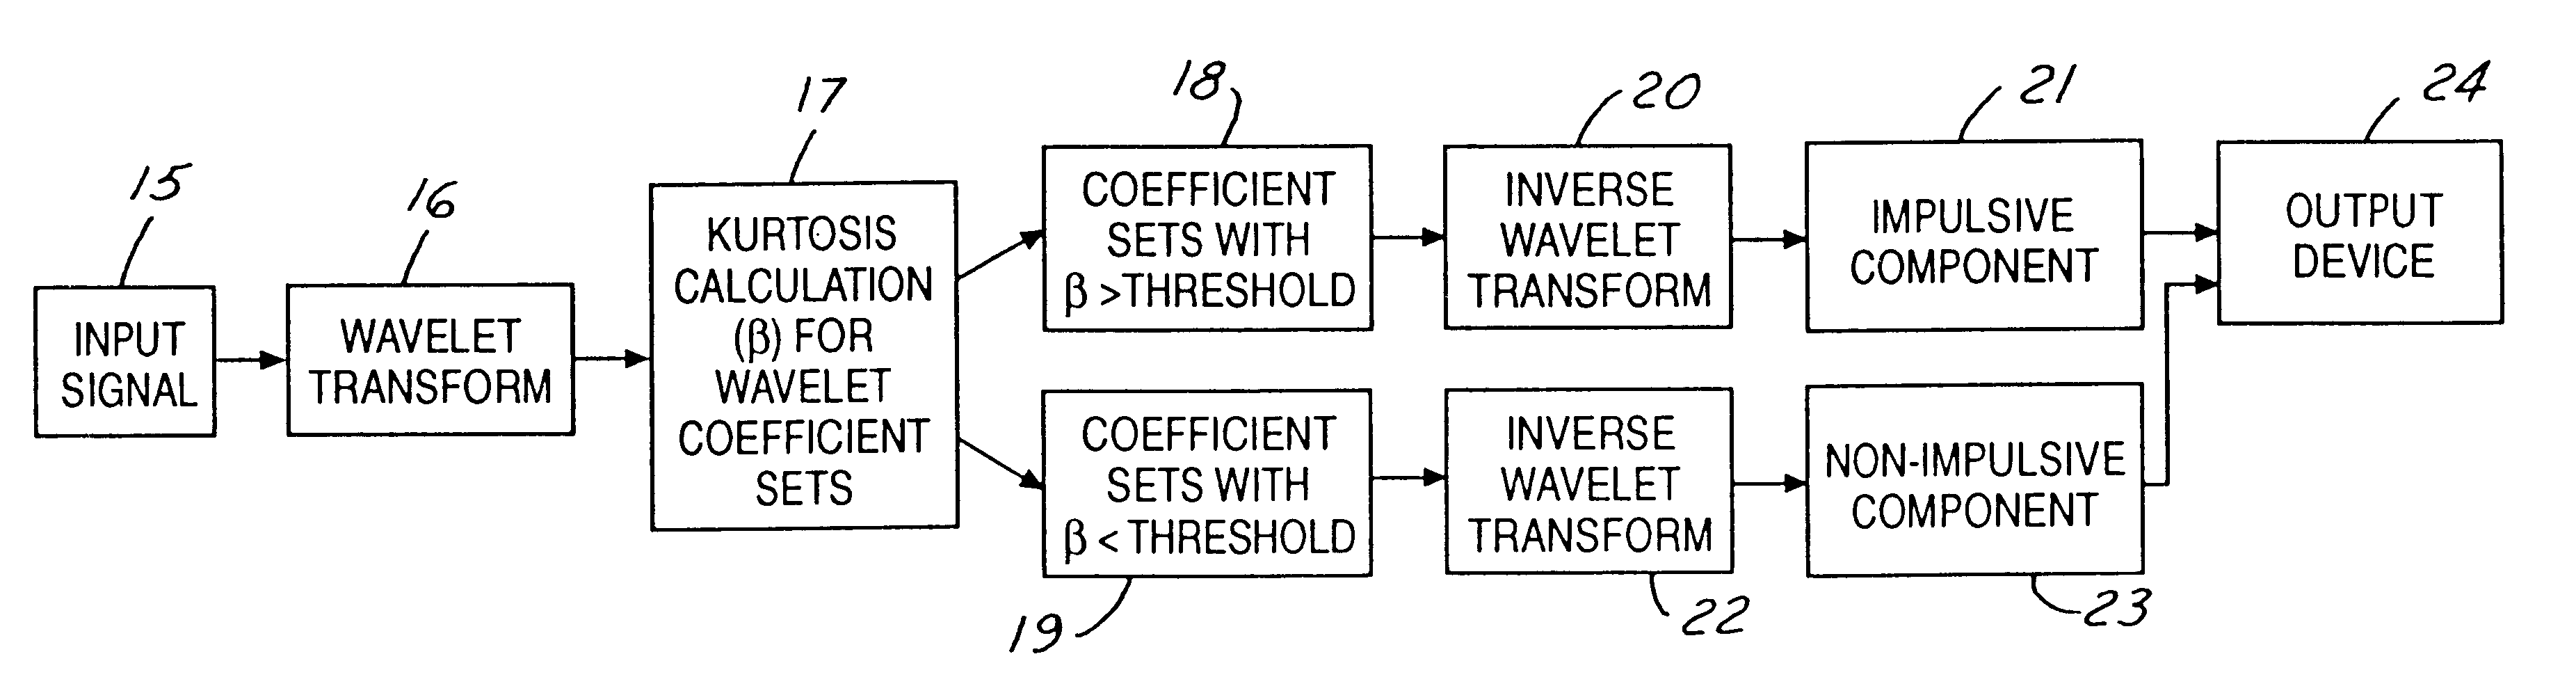 Patente US6249749 - Method and apparatus for separation of